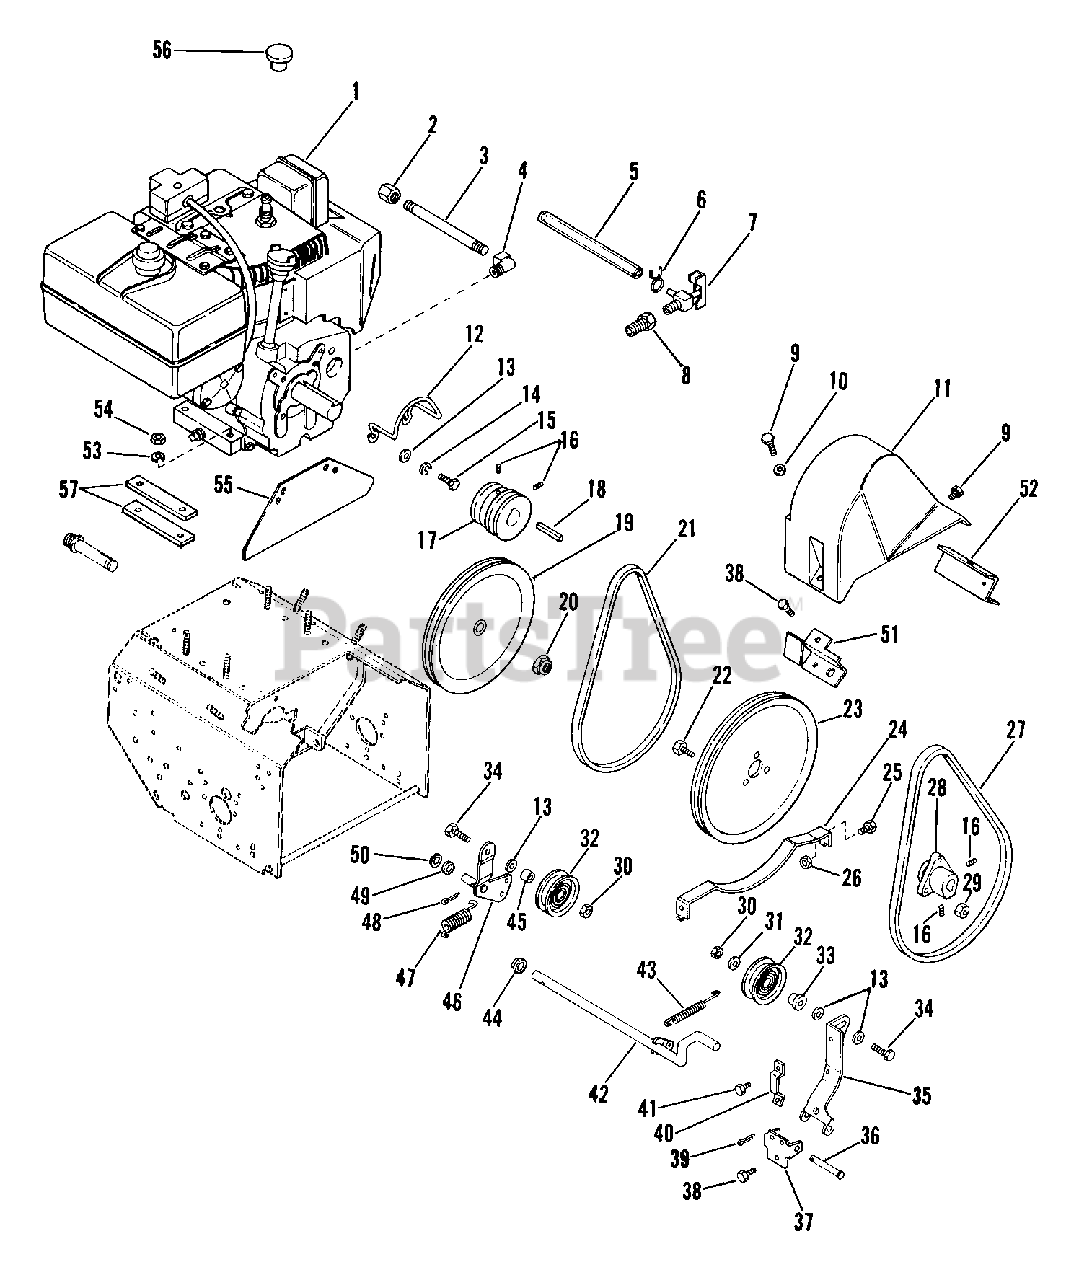 Ariens Parts On The Engine And Belt Drive Diagram For 924079  St 824 S